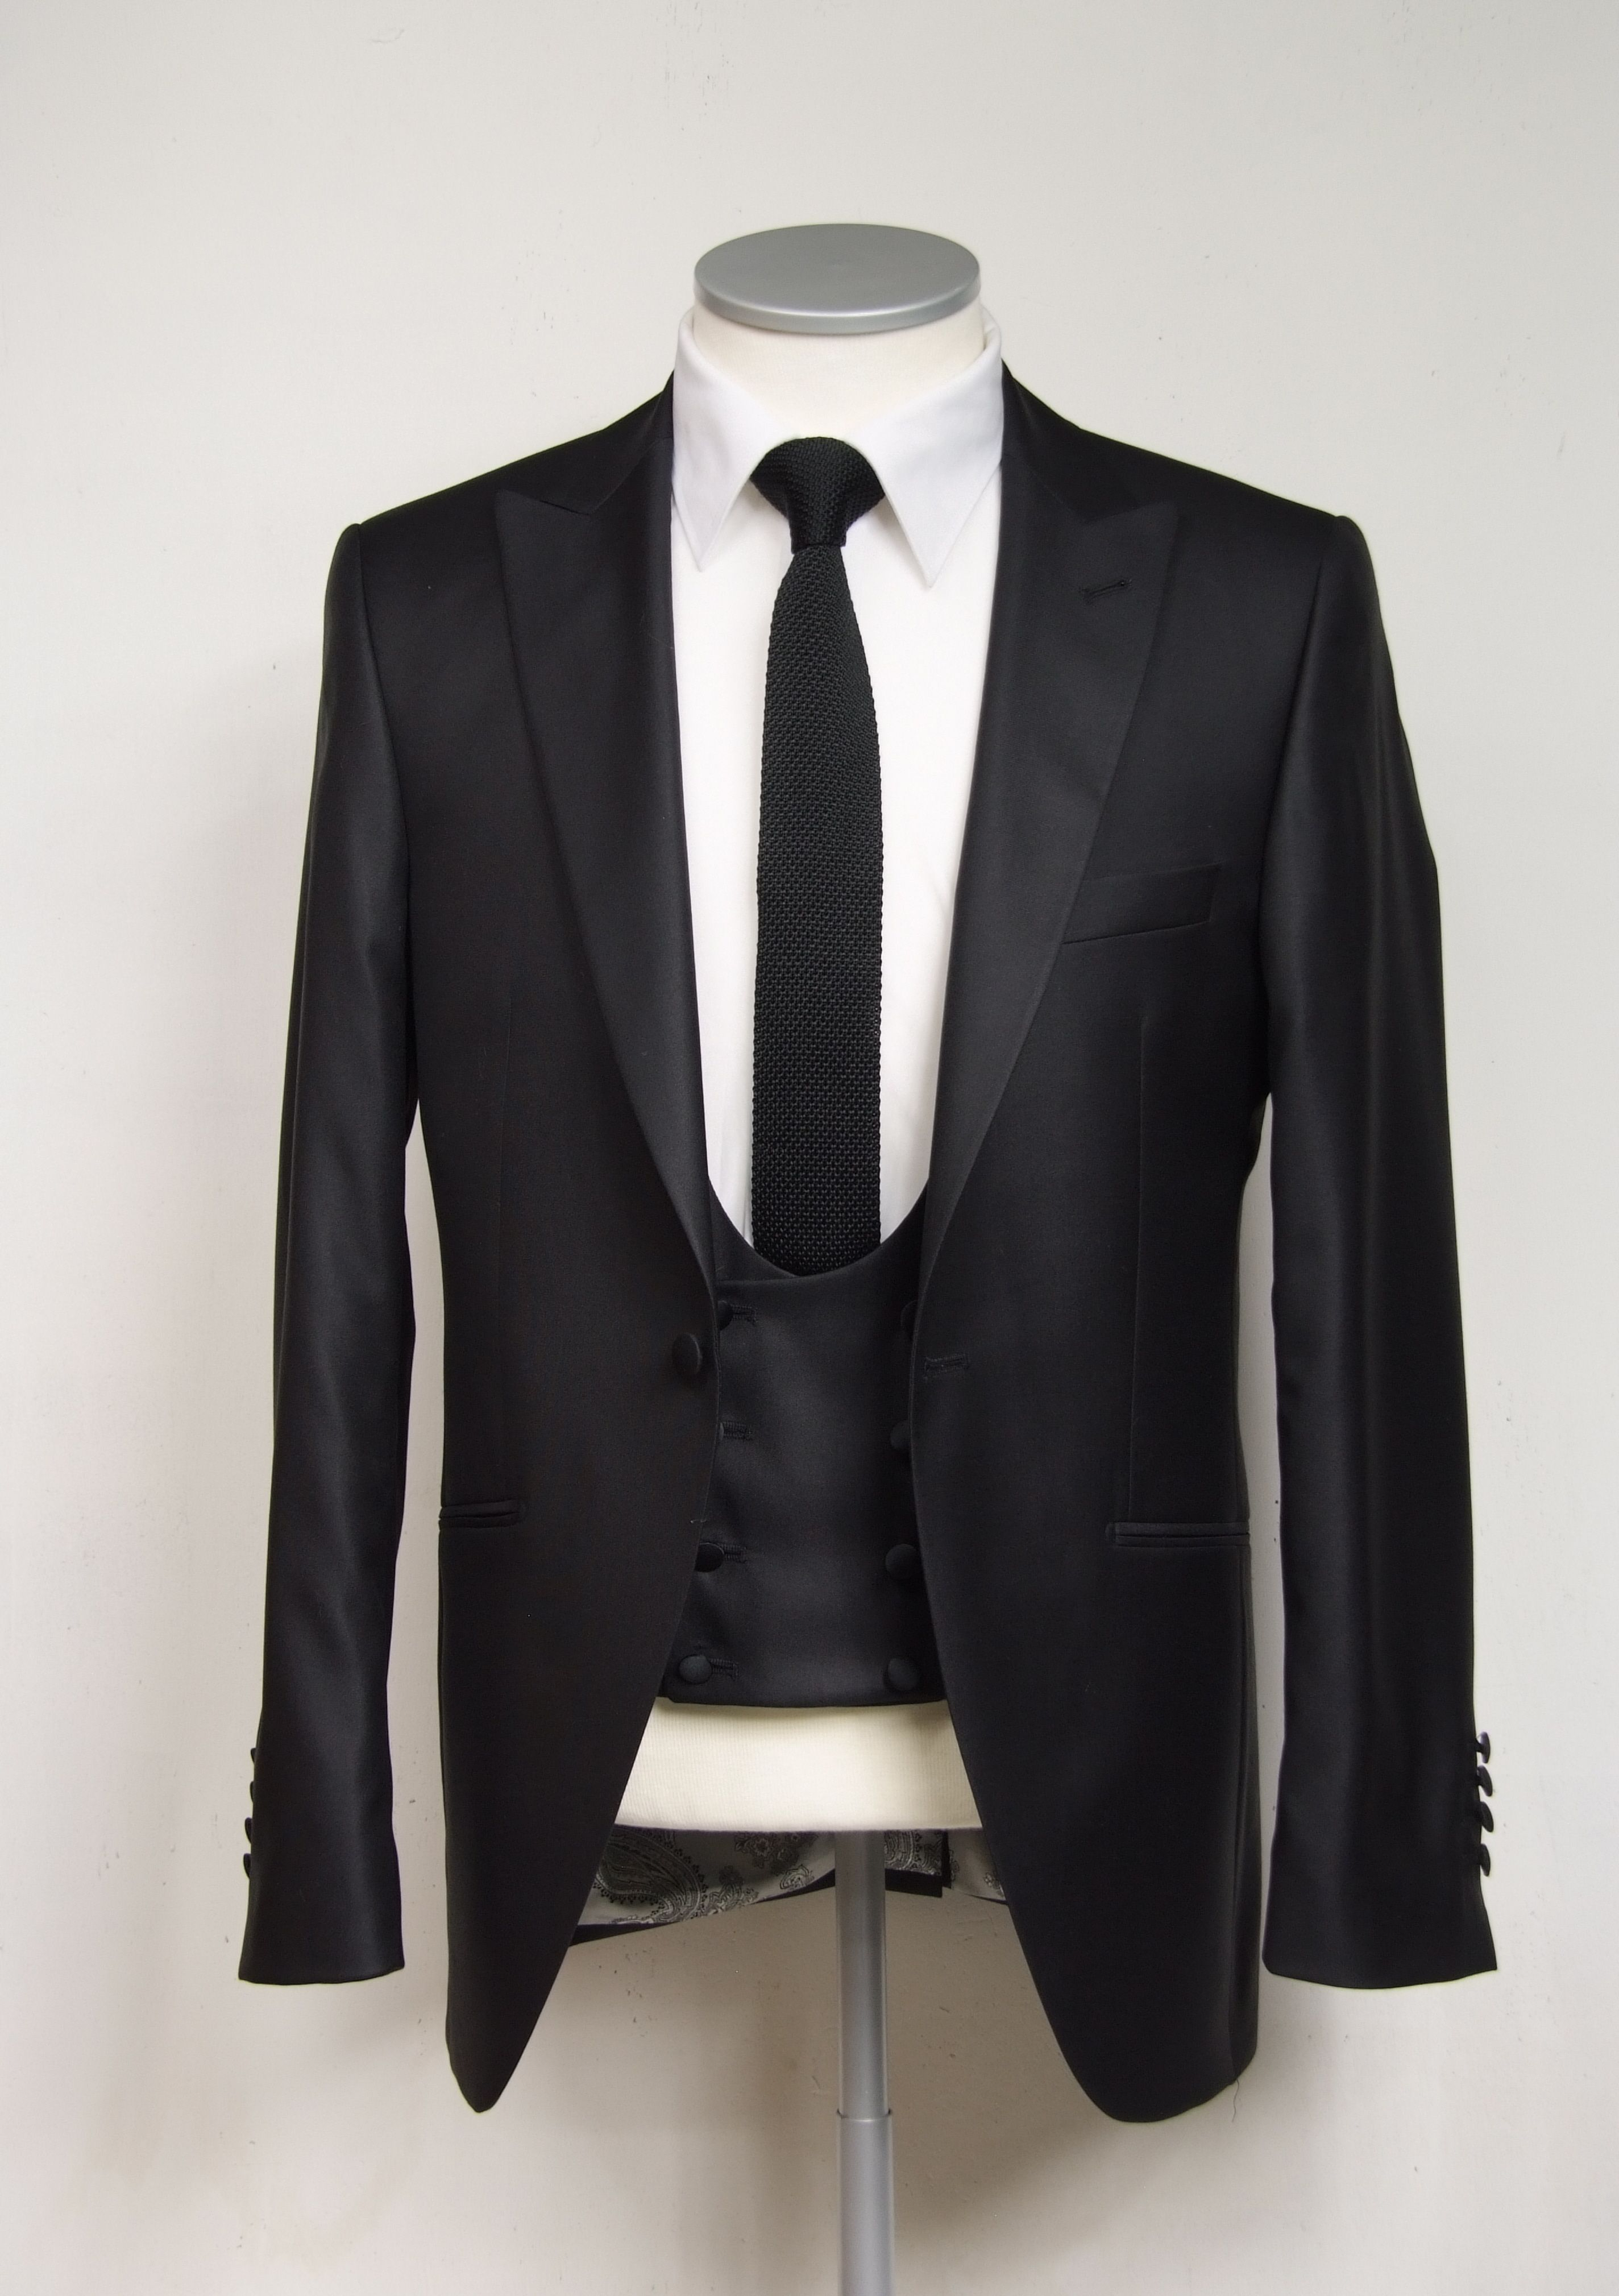 Grooms wedding suit Black wool & silk mix suit with low cut db scoop  waistcoat. This jacket has a lovely cutaway front. made to measure white  cotton shirt ...